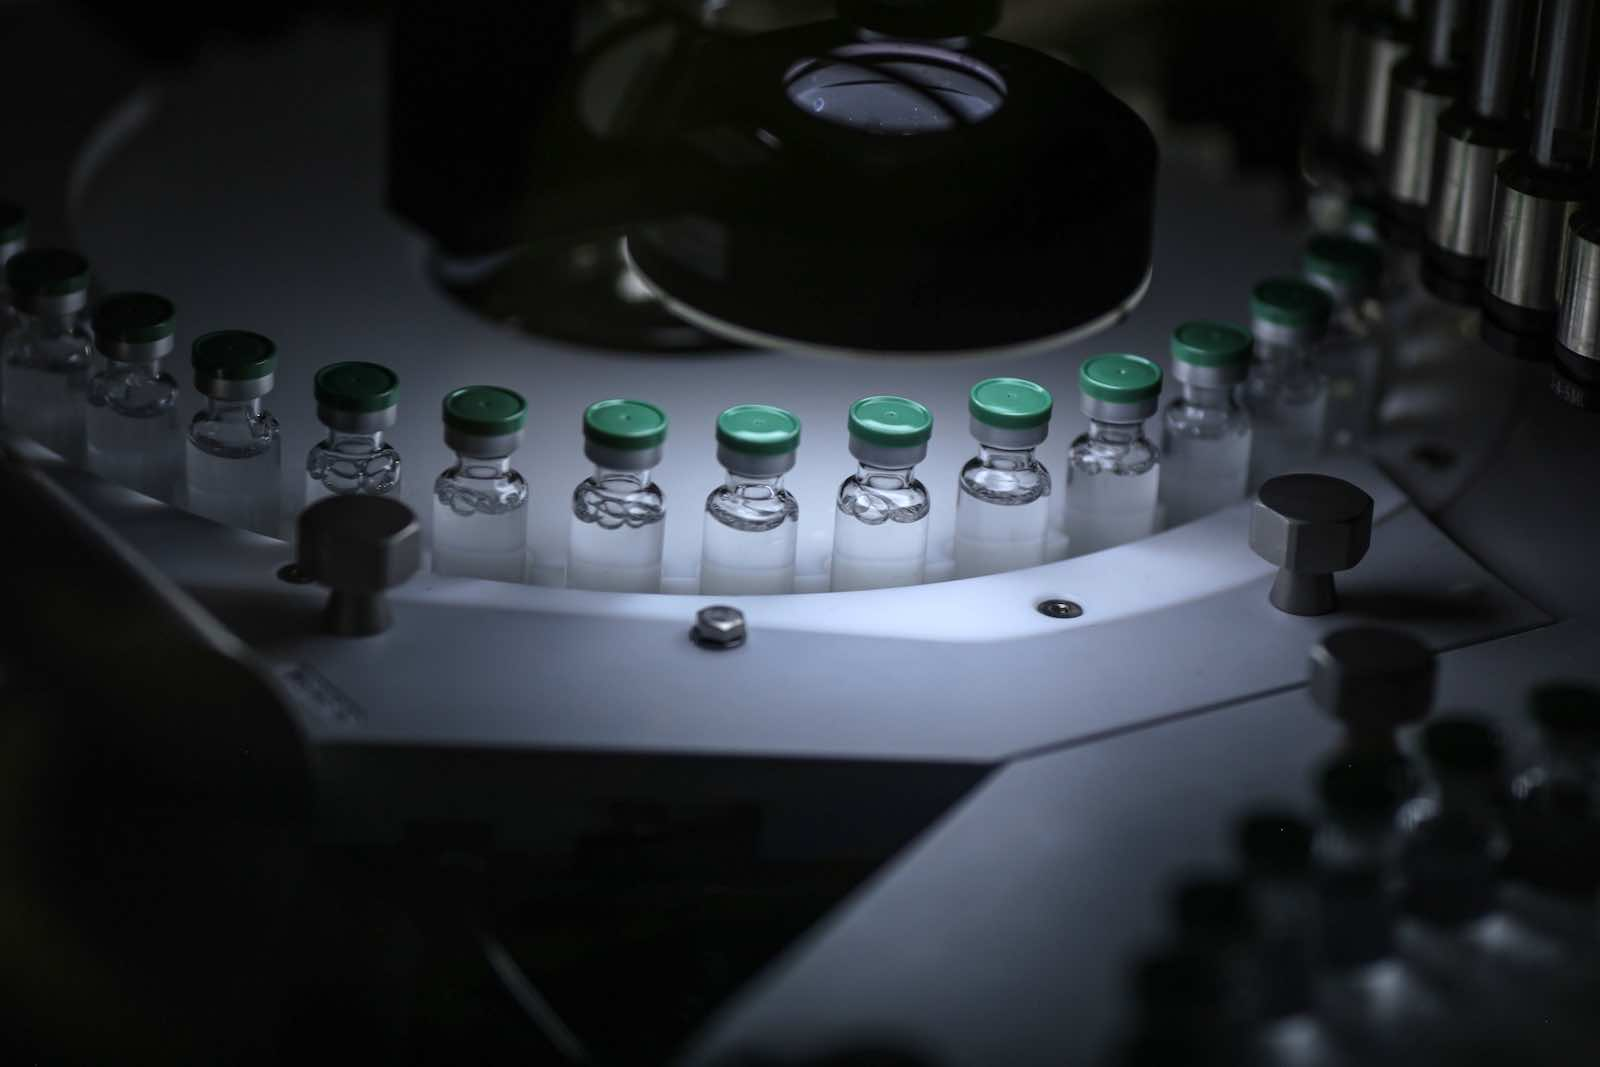 Vials of Covishield, the local name for the Covid-19 vaccine developed by AstraZeneca and the University of Oxford, on the production line at the Serum Institute of India, Pune, Maharashtra (Dhiraj Singh/Bloomberg via Getty Images)